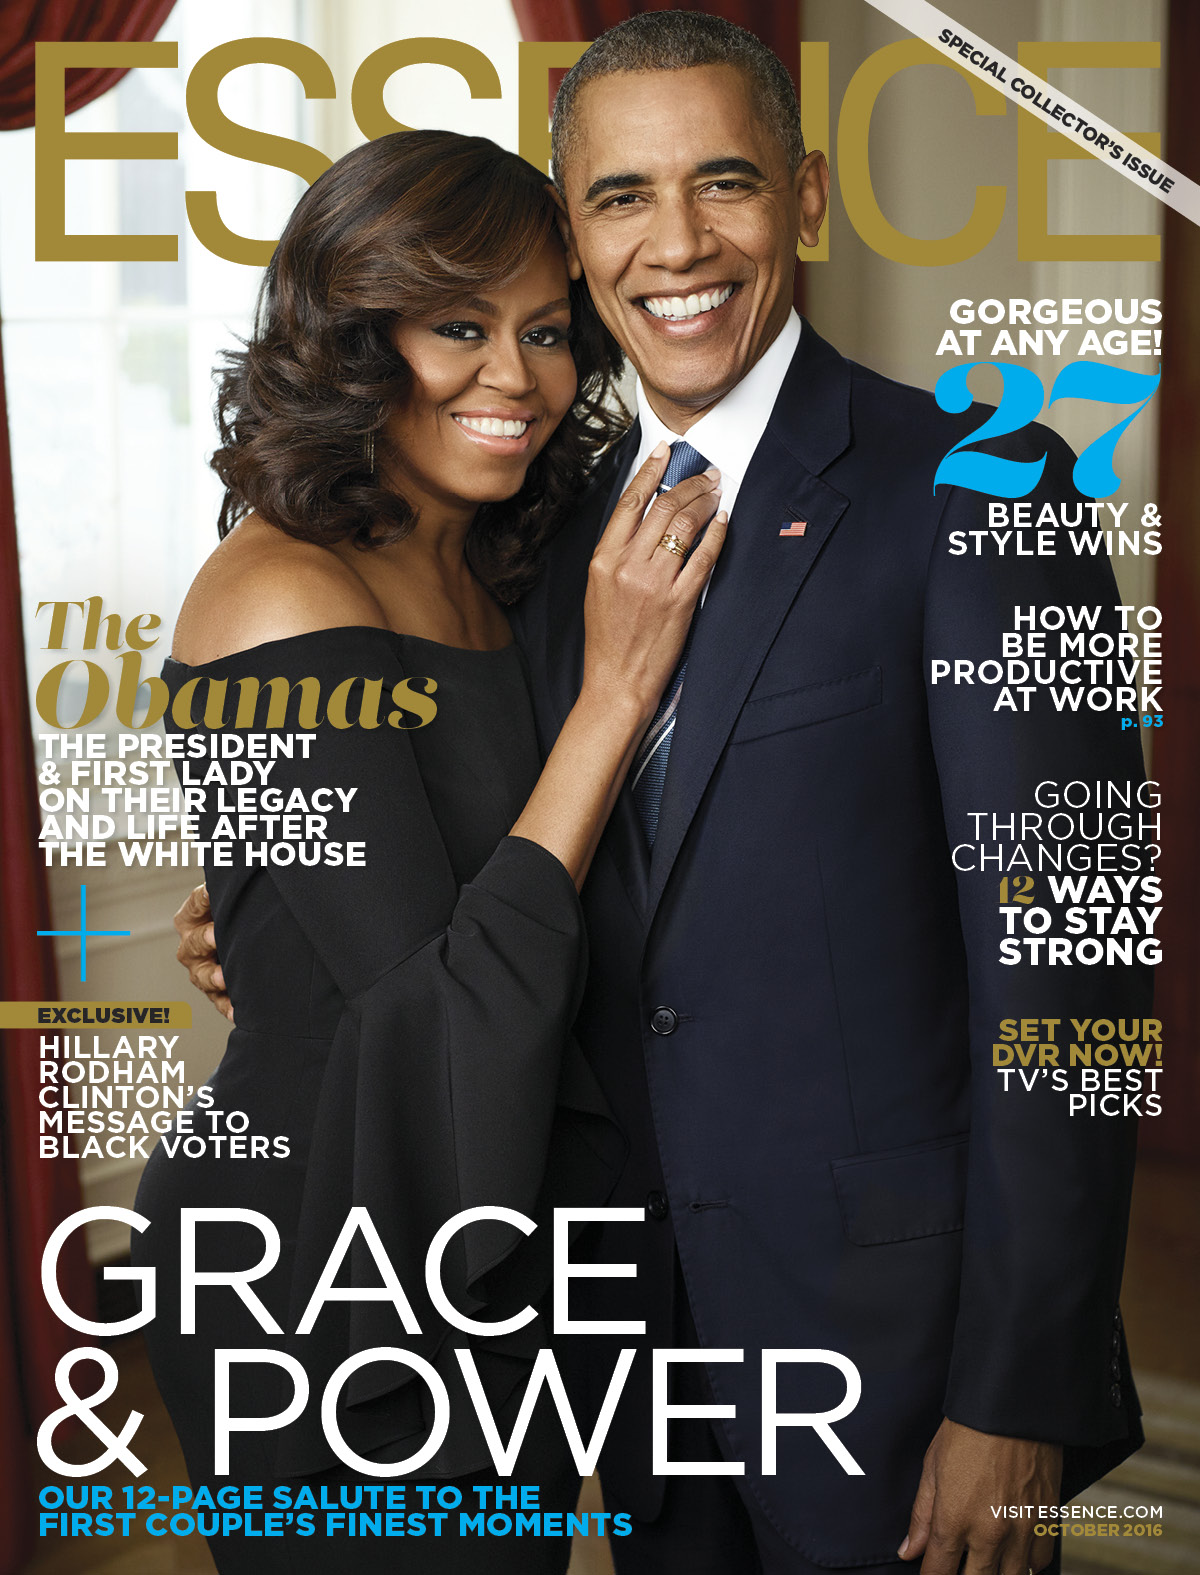 <b>MICHELLE AND BARACK ...</b>